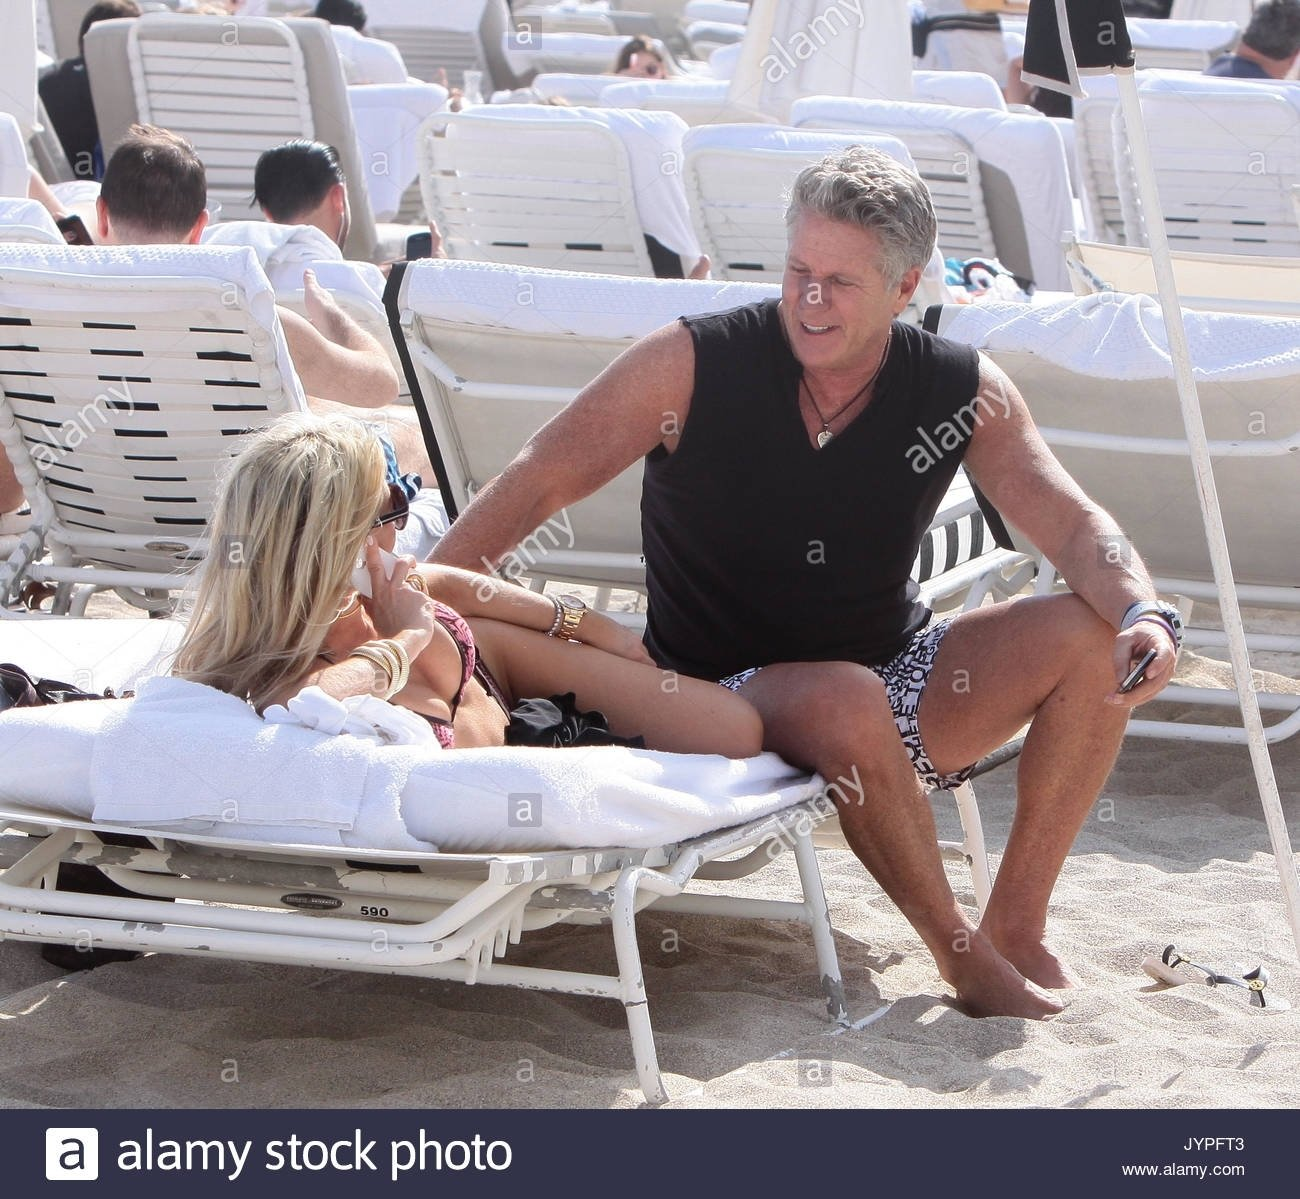 donny deutsch and a mystery woman. donny deutsch advertising stock